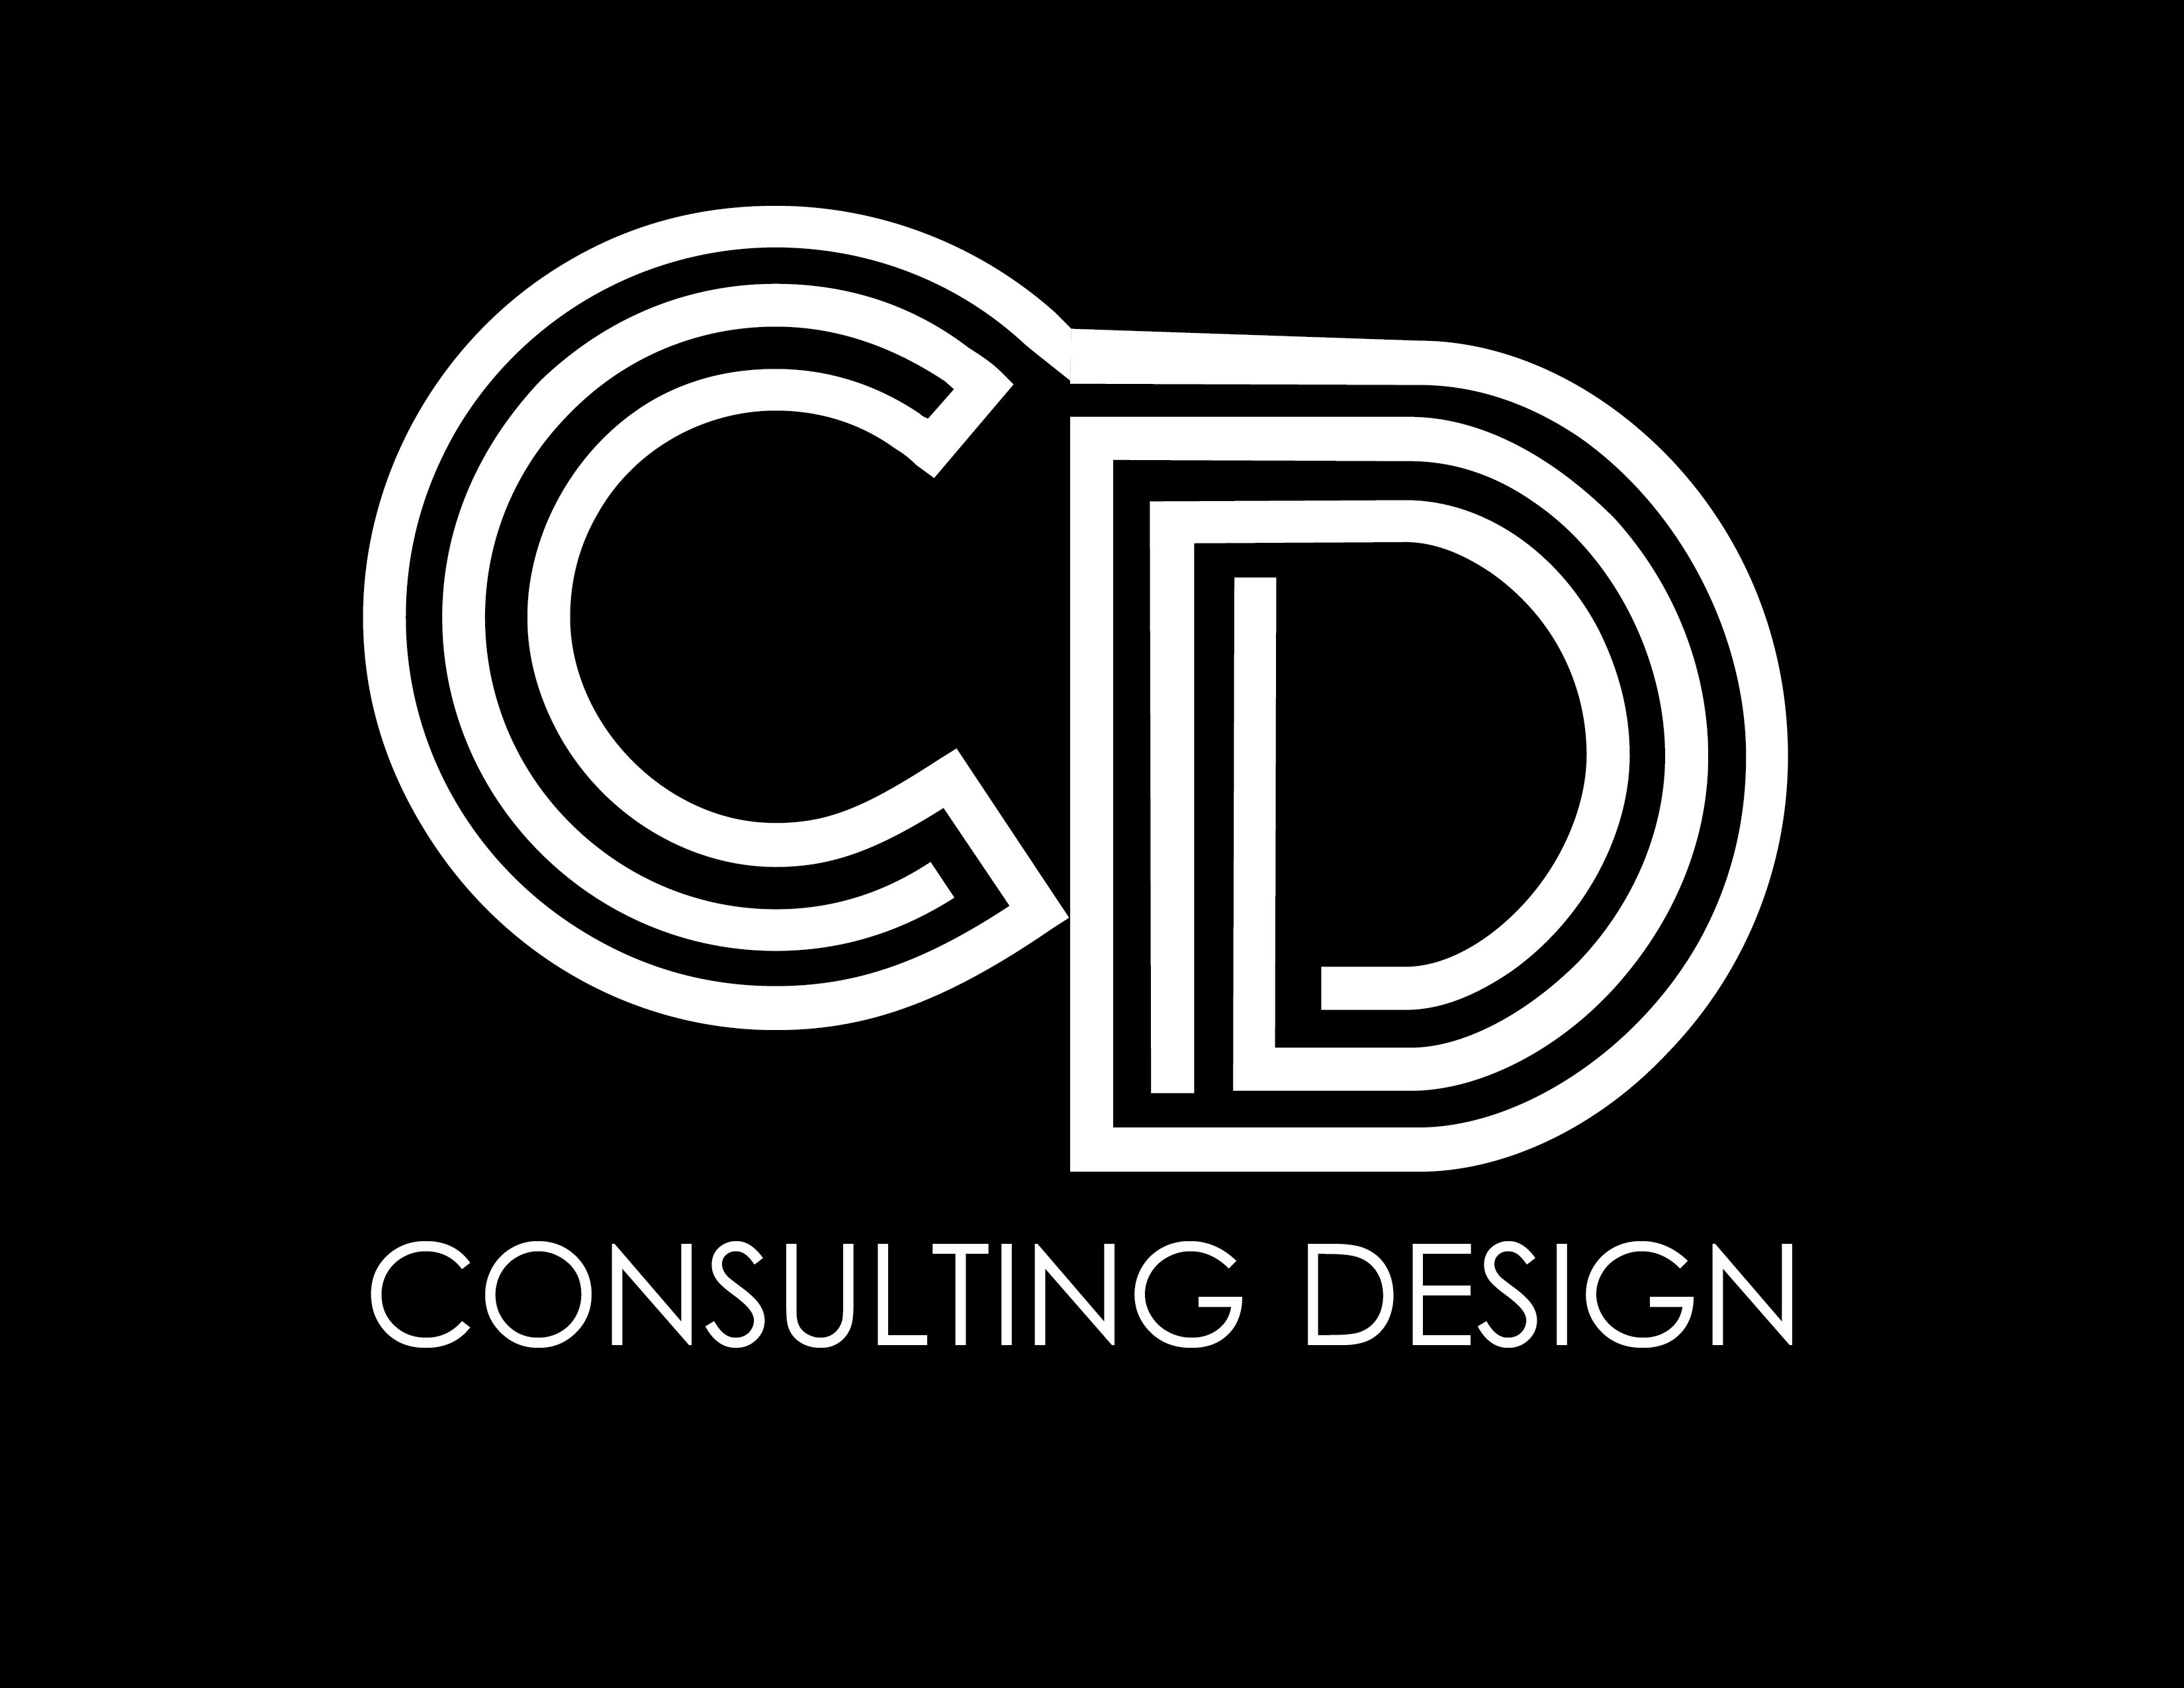 Consulting design for Design and consultancy